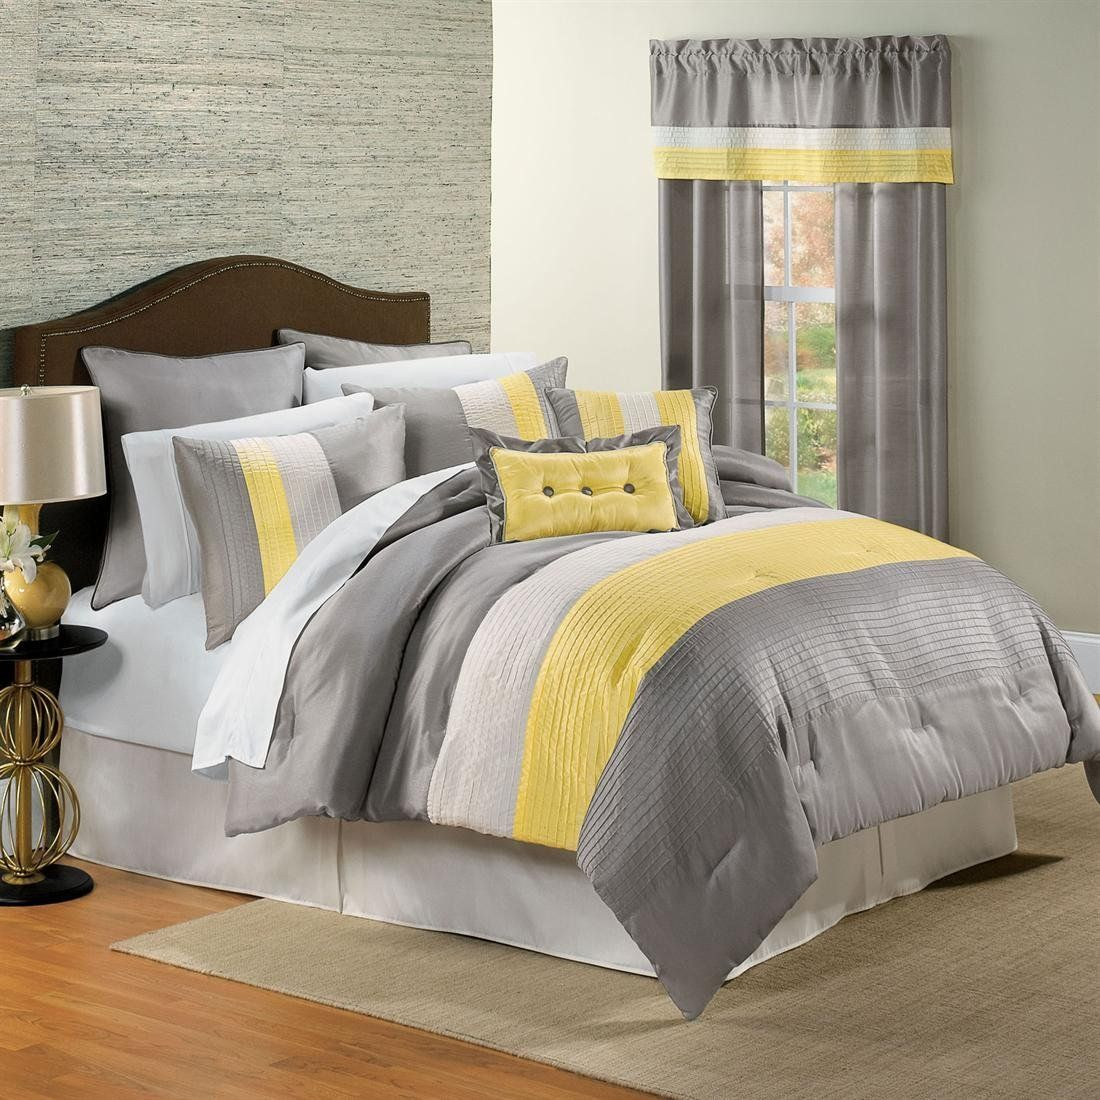 Attractive Yellow Gray Bedding Set